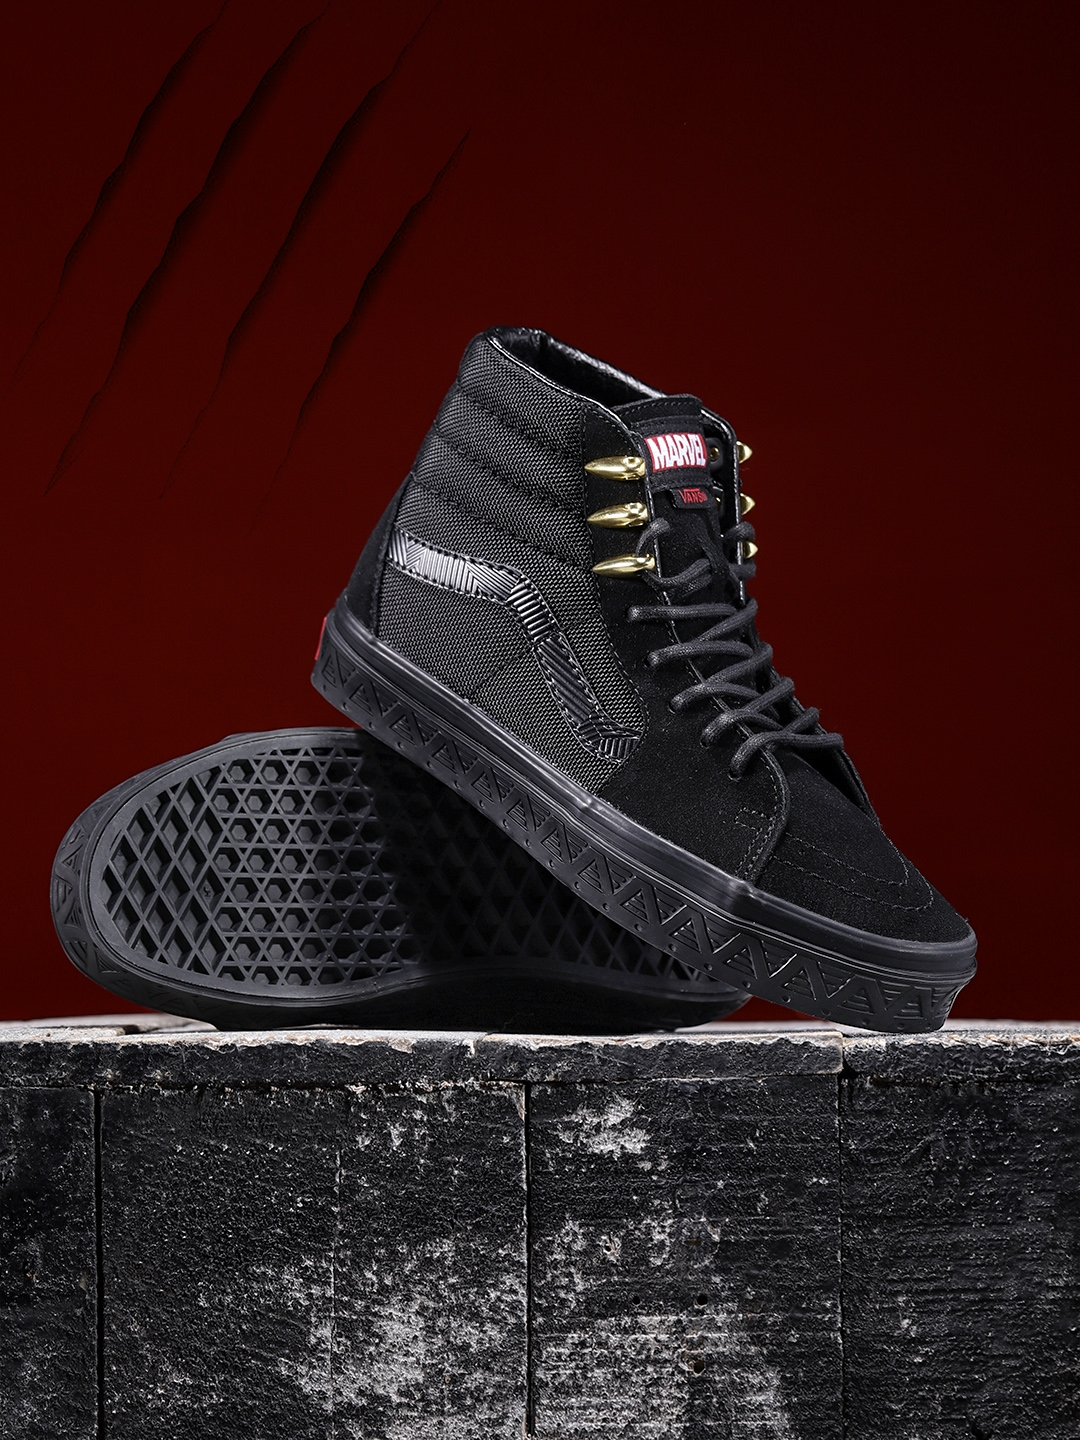 ec8035e1e4 Buy Vans Unisex Marvel Black Panther Mid Top Sneakers - Casual Shoes ...